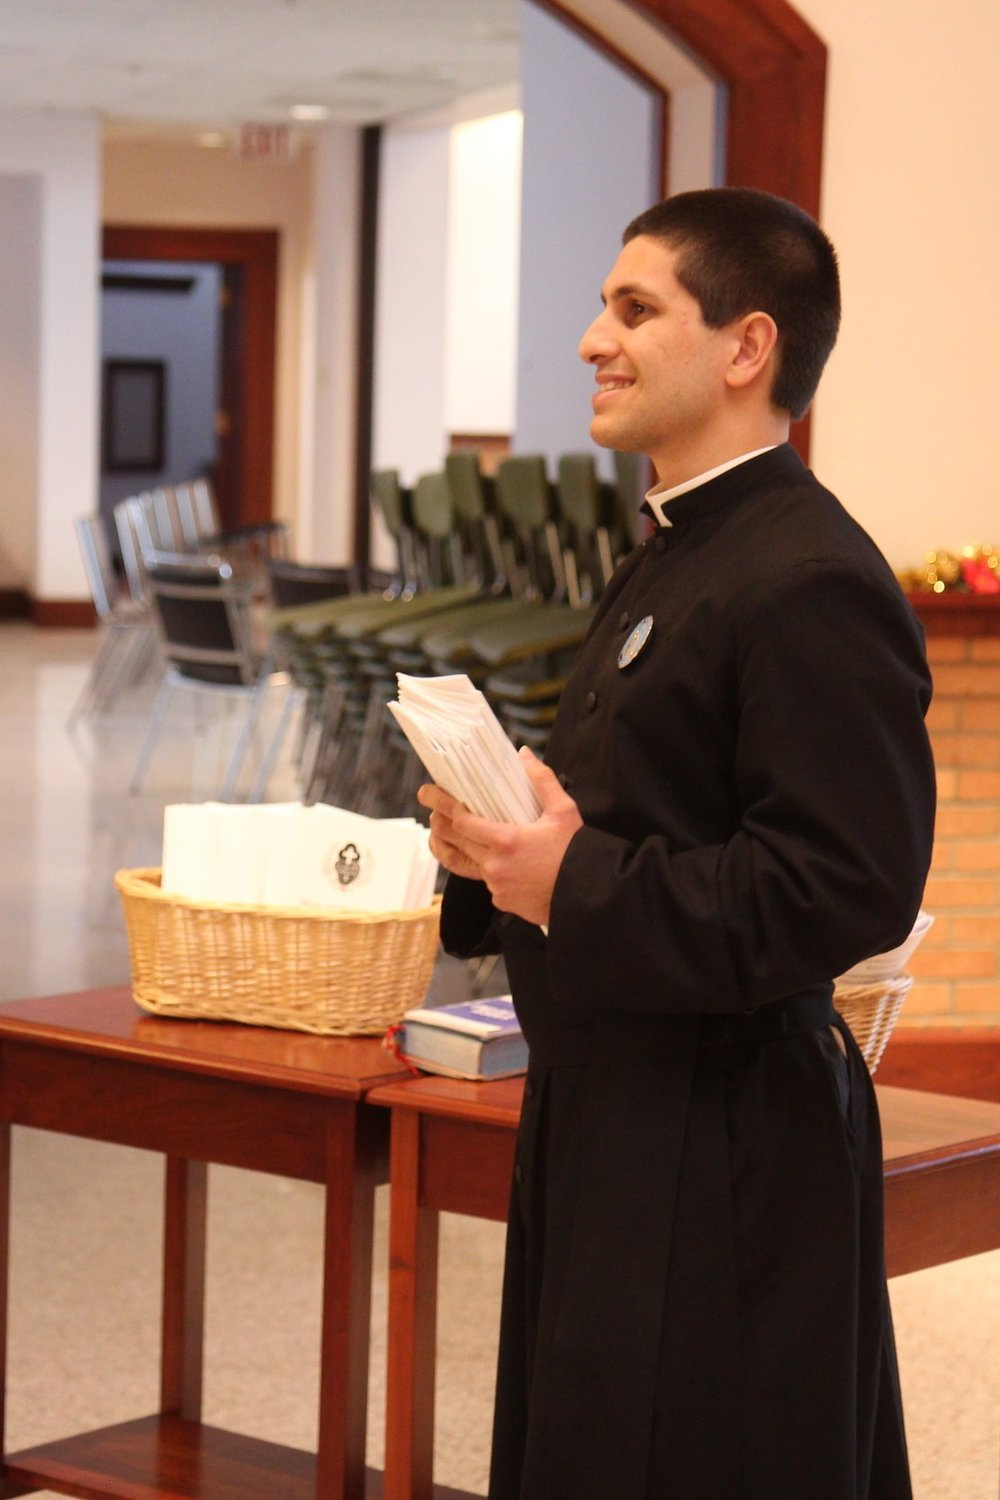 Br. Justin Pybus, CPM assisted with seating guests in Chapel for the Mass.